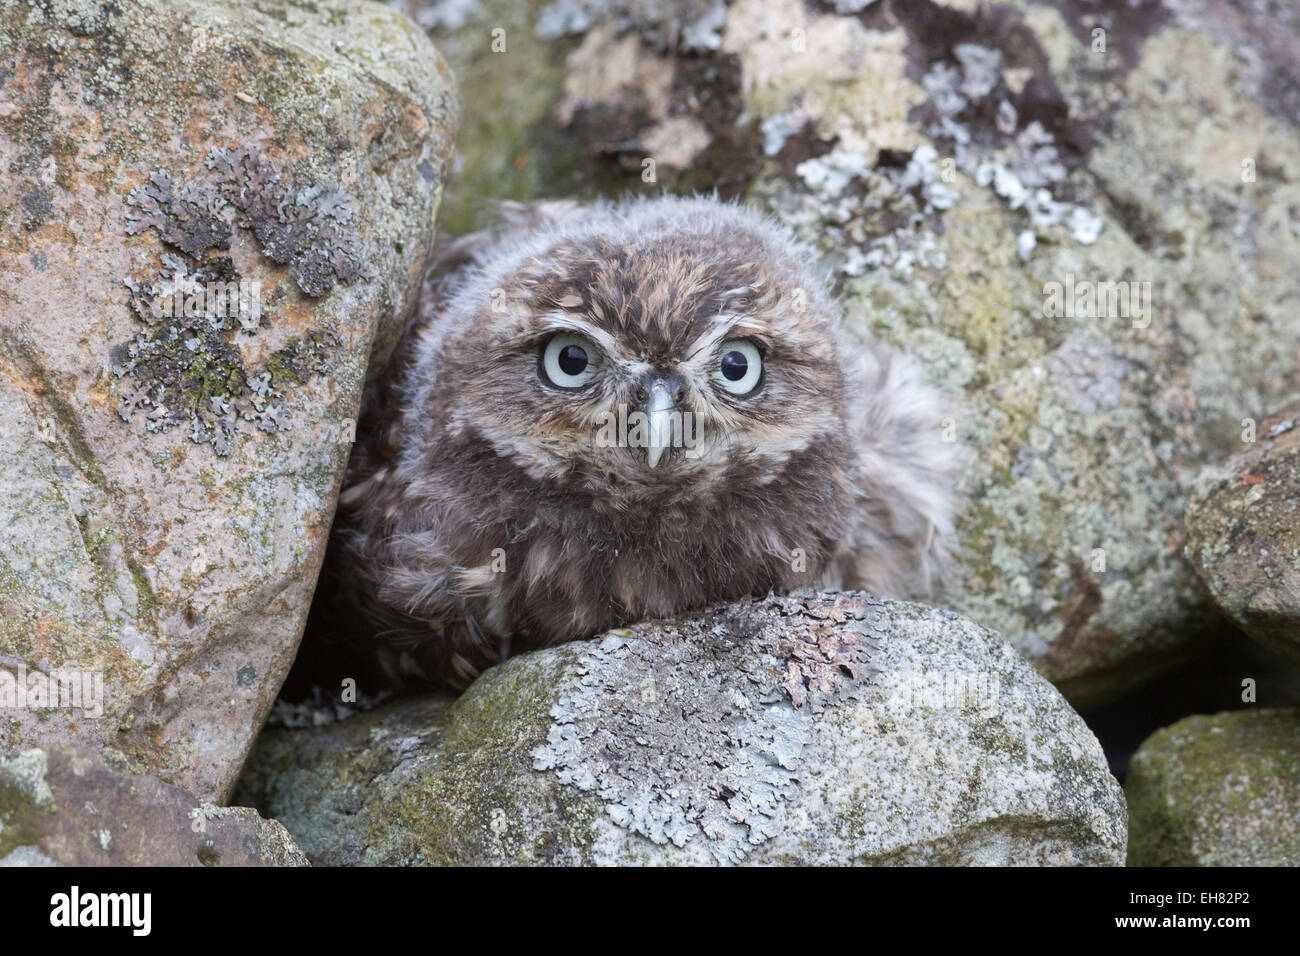 Little owl baby (Athene noctua), captive, United Kingdom, Europe - Stock Image